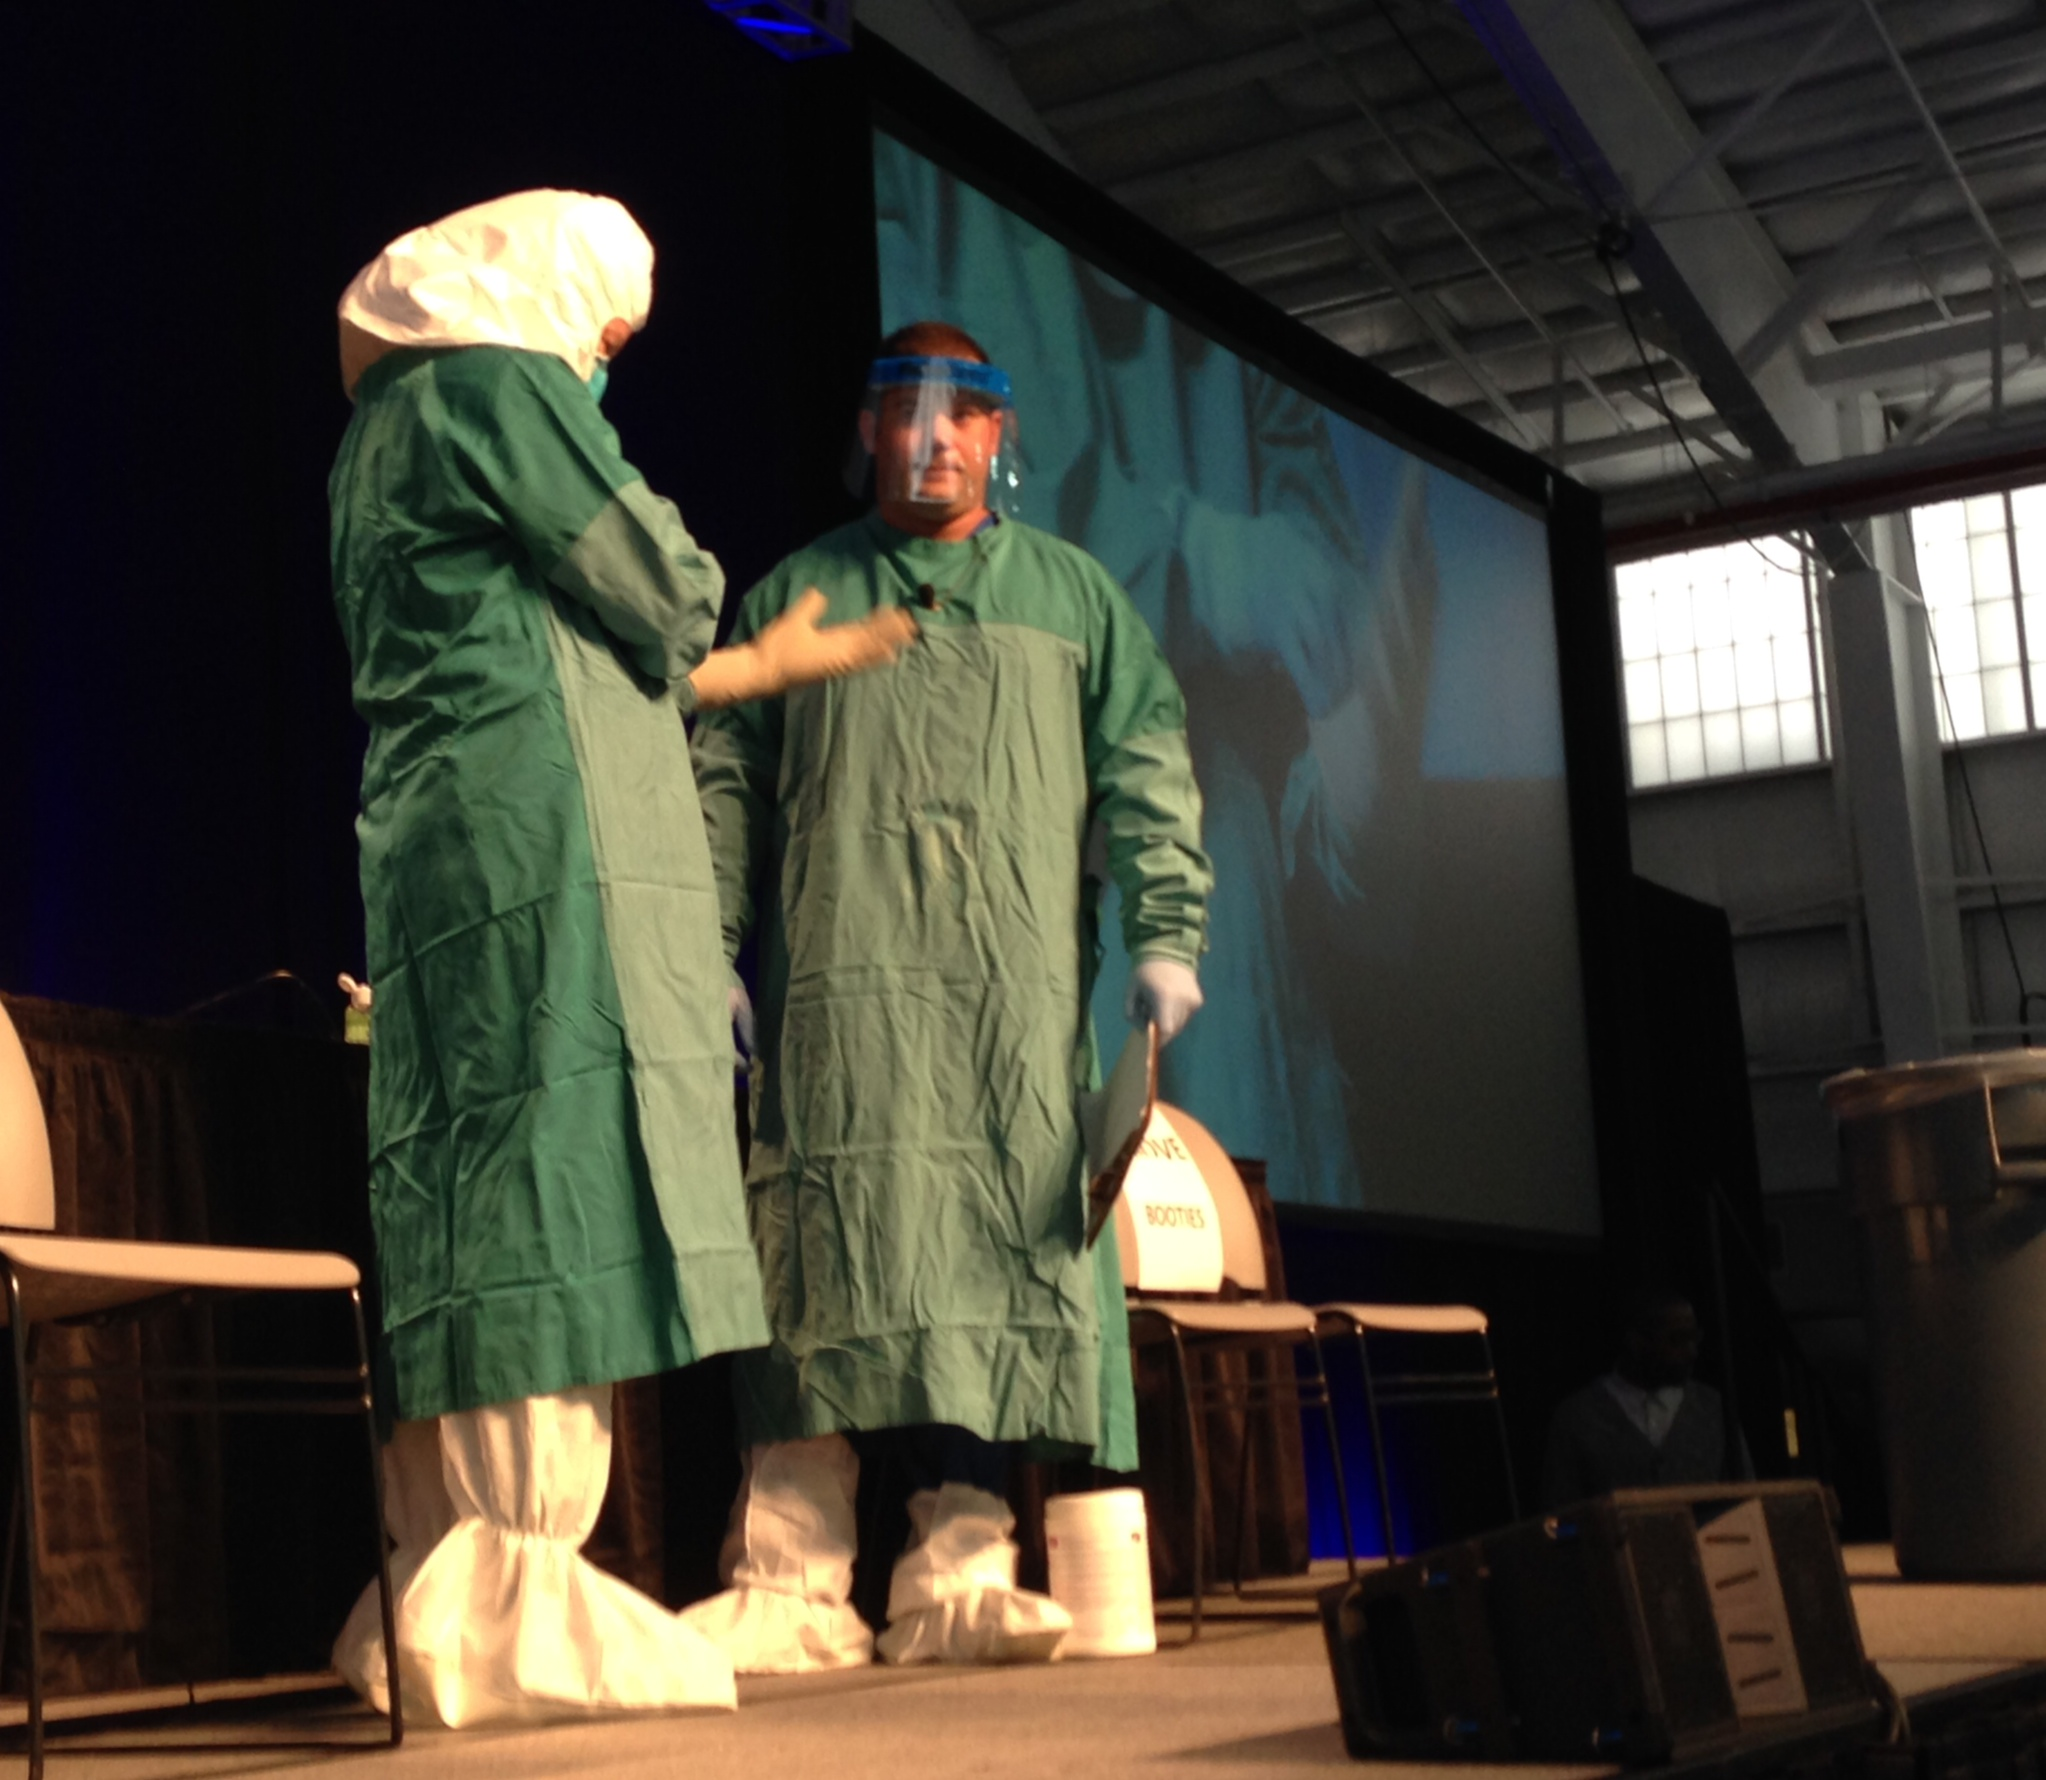 CDC and Mount Sinai health workers demonstrate how to put on and off Ebola personal protective equipment at an Ebola education session in New York City